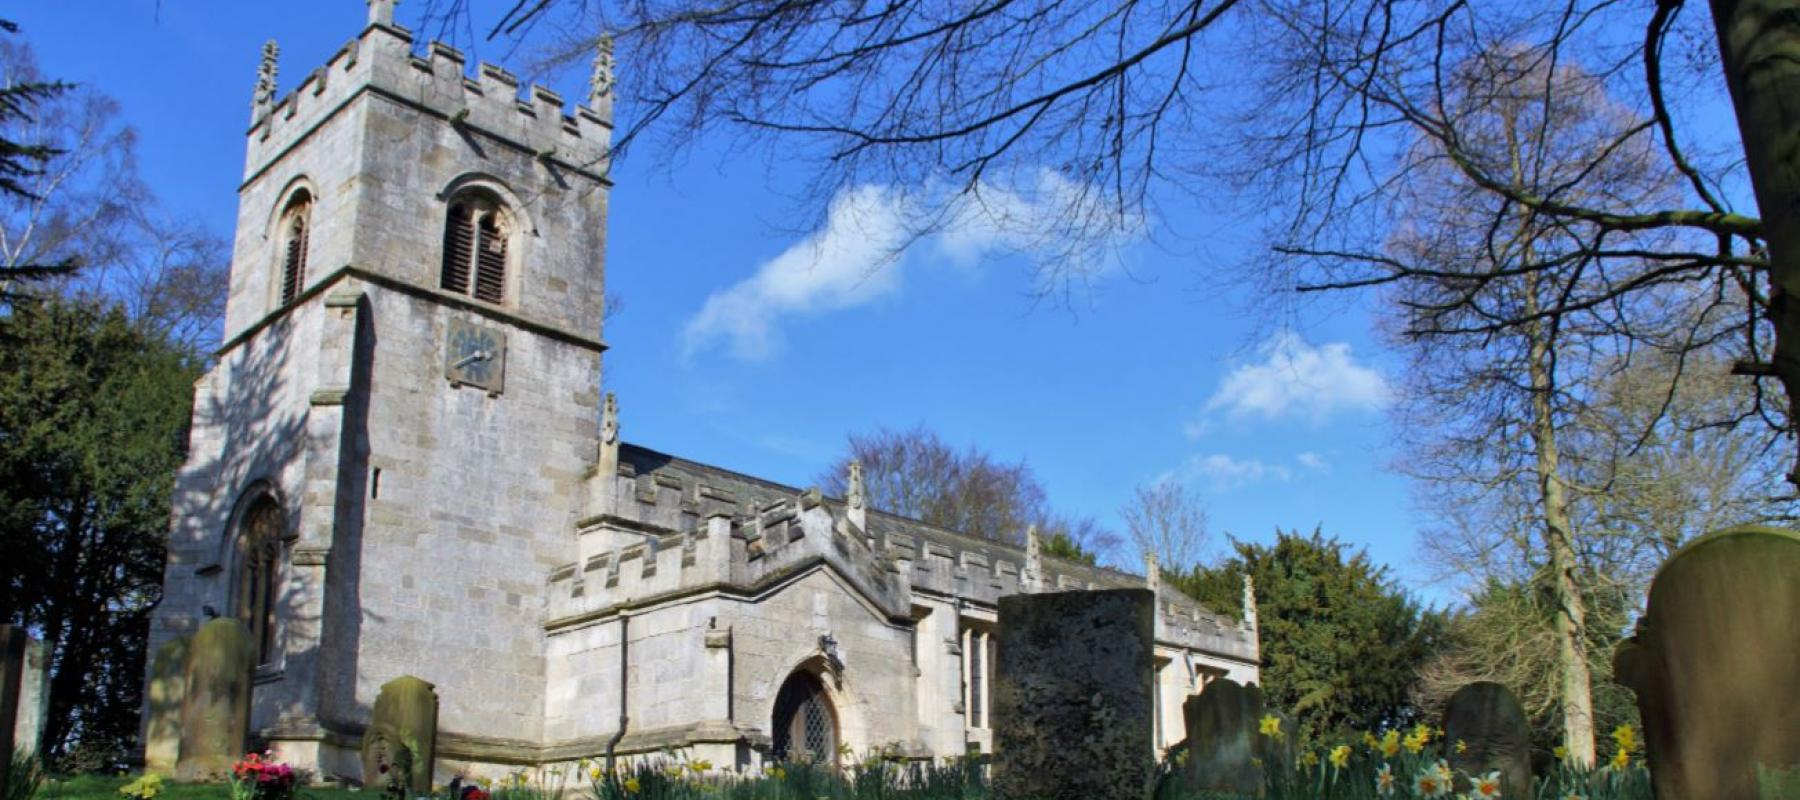 All Saints Church, Babworth